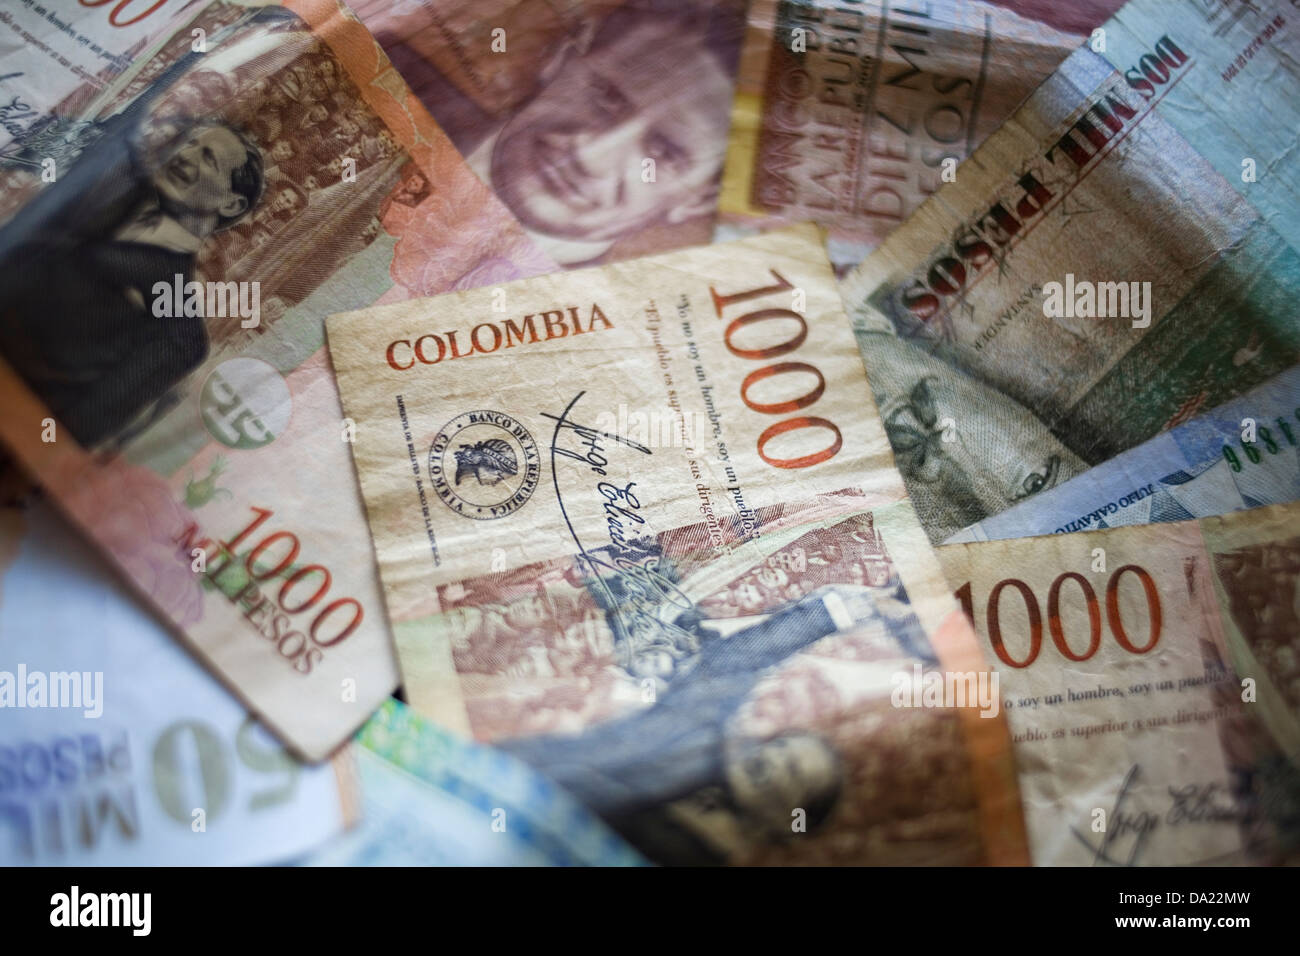 Colombian banknotes. - Stock Image